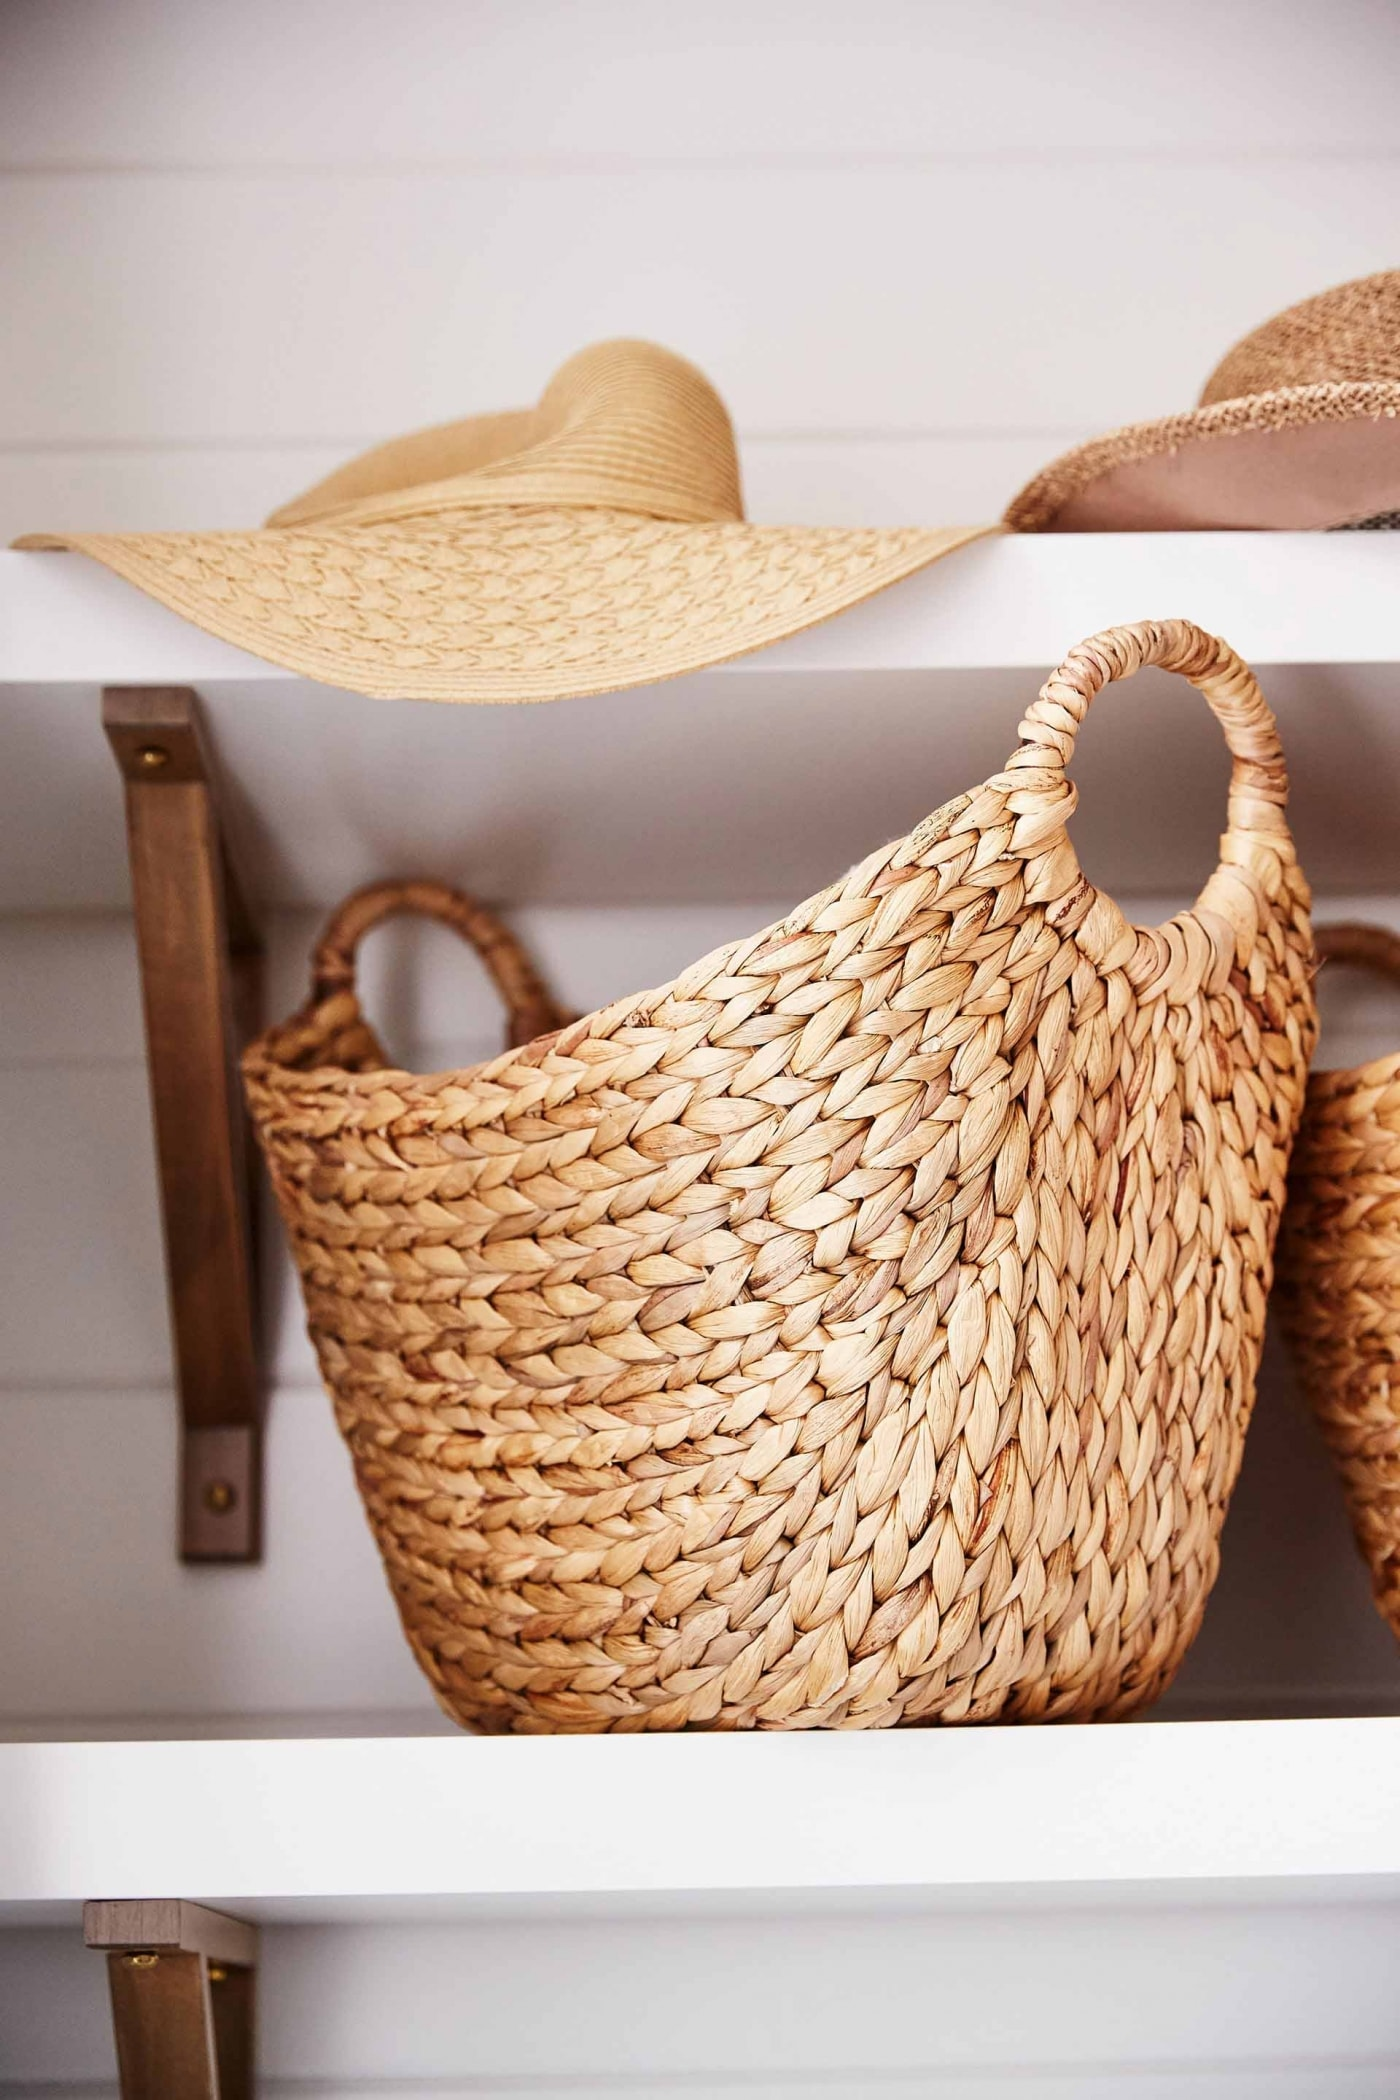 Mudroom - Sarah off the Grid. Seagrass basket on an open shelf. #seagrass #wovenbasket